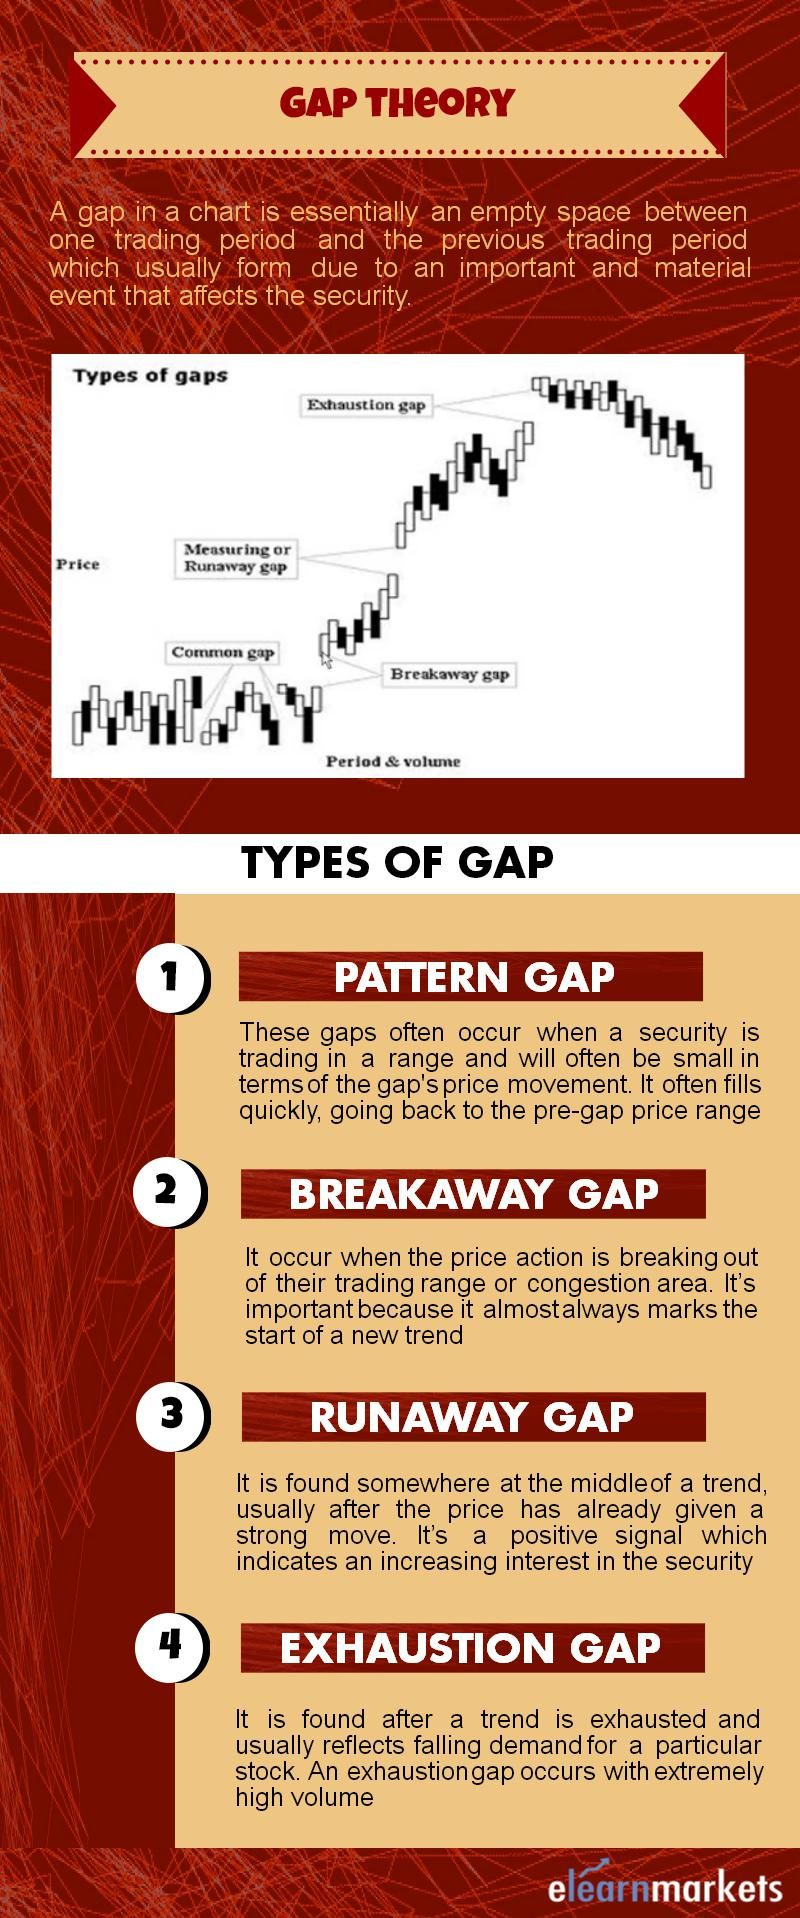 Gap theory and the types of gap often seen in technical